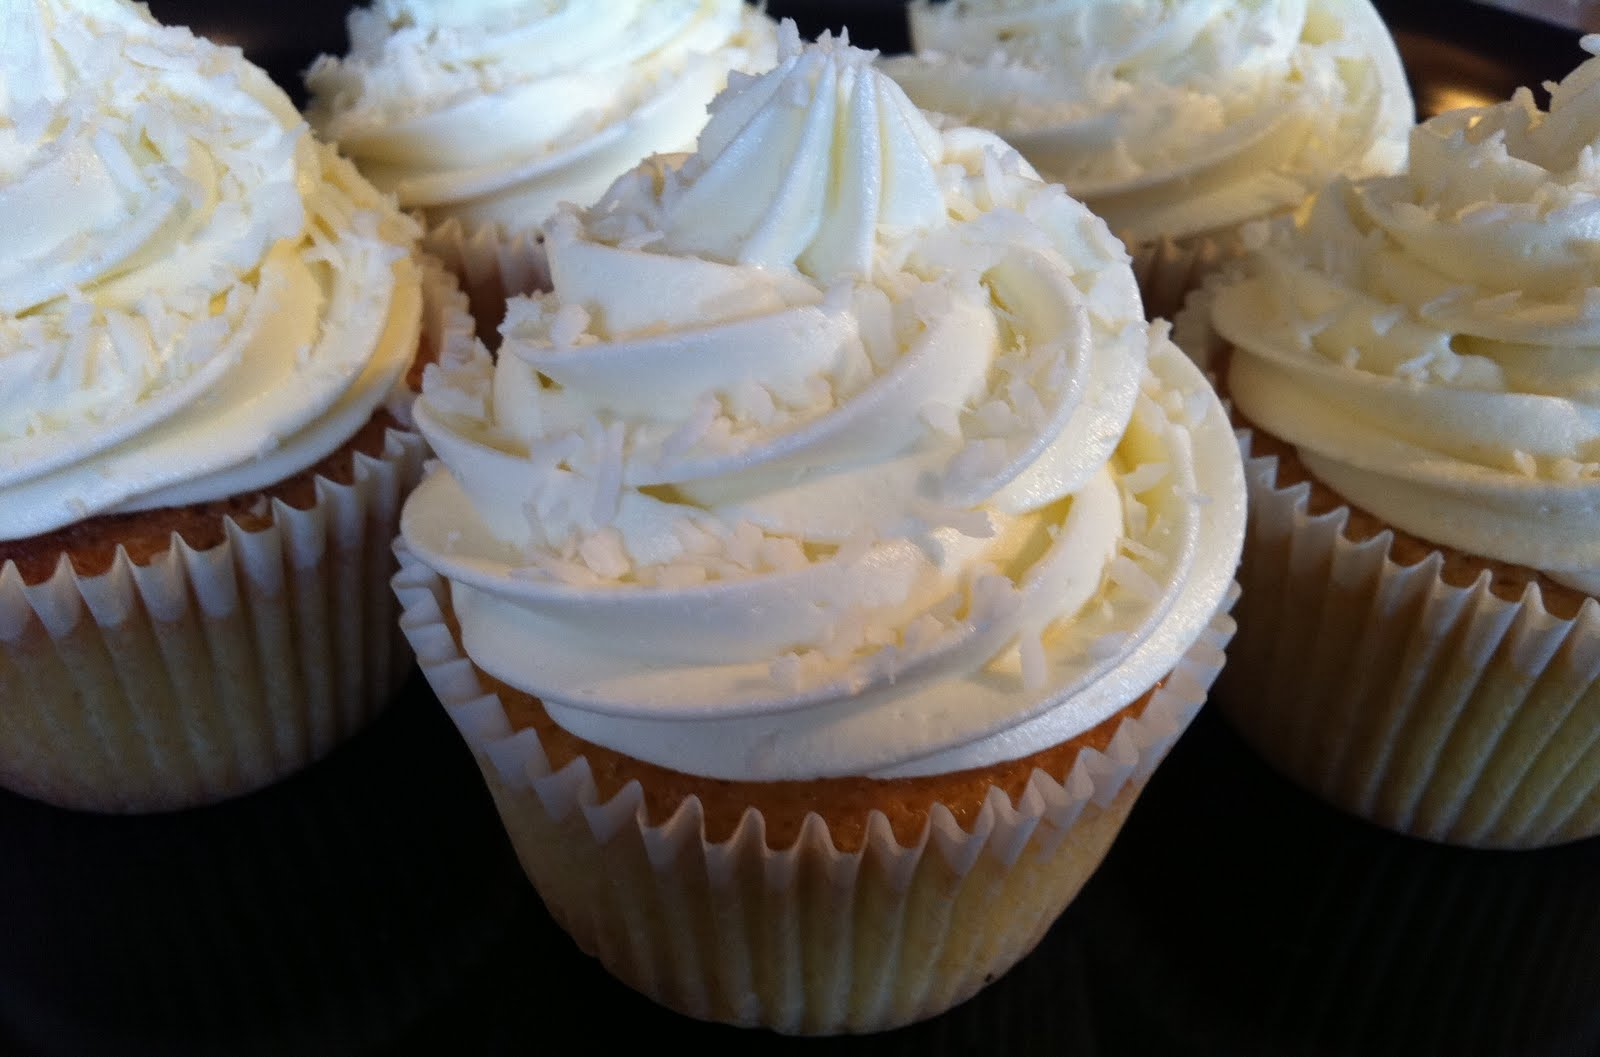 Sweetharts Cakes and Bakes: Coconut lime cupcakes